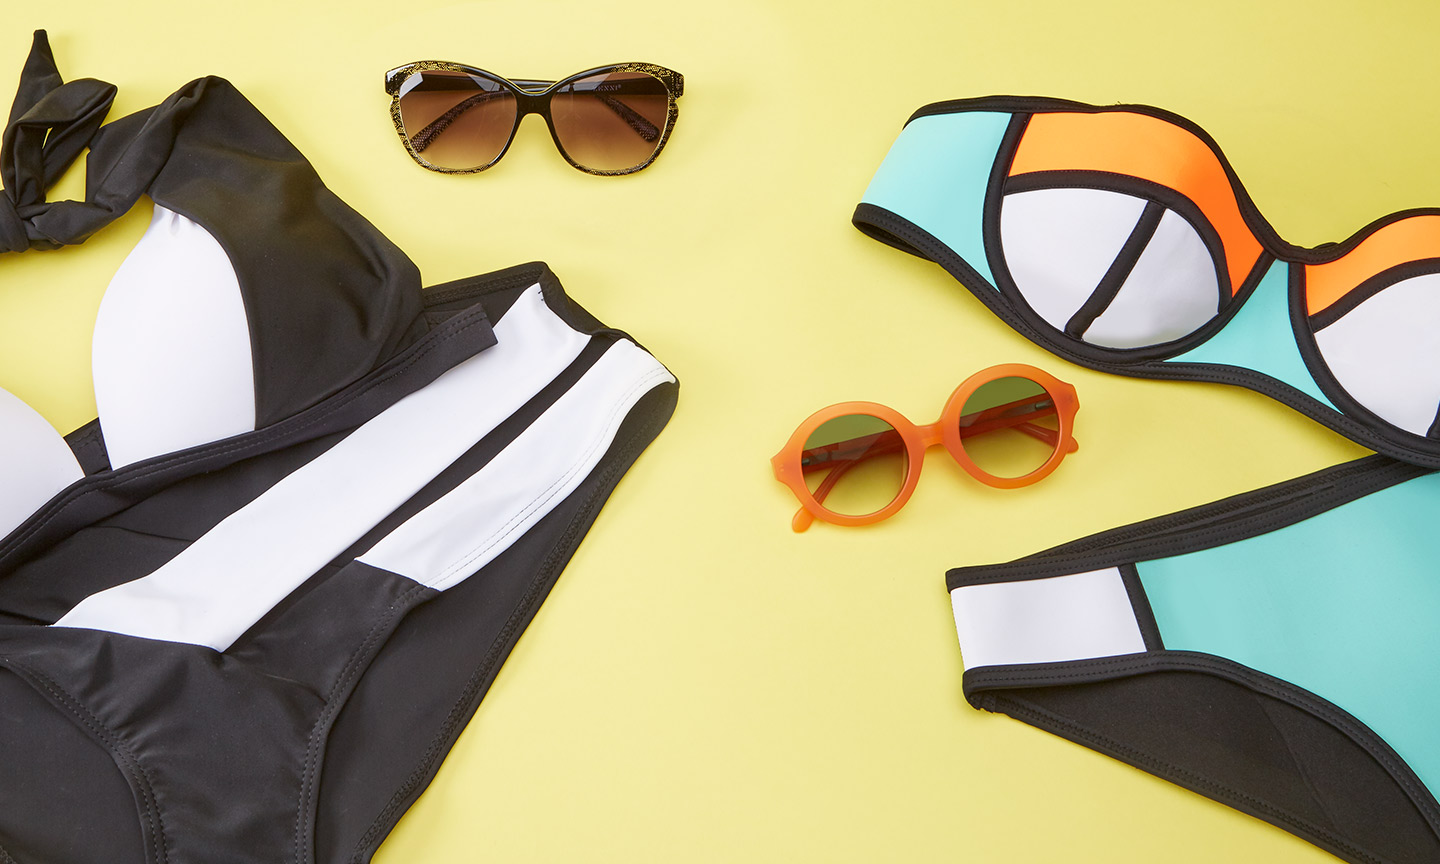 color-blocking bikinis and glasses